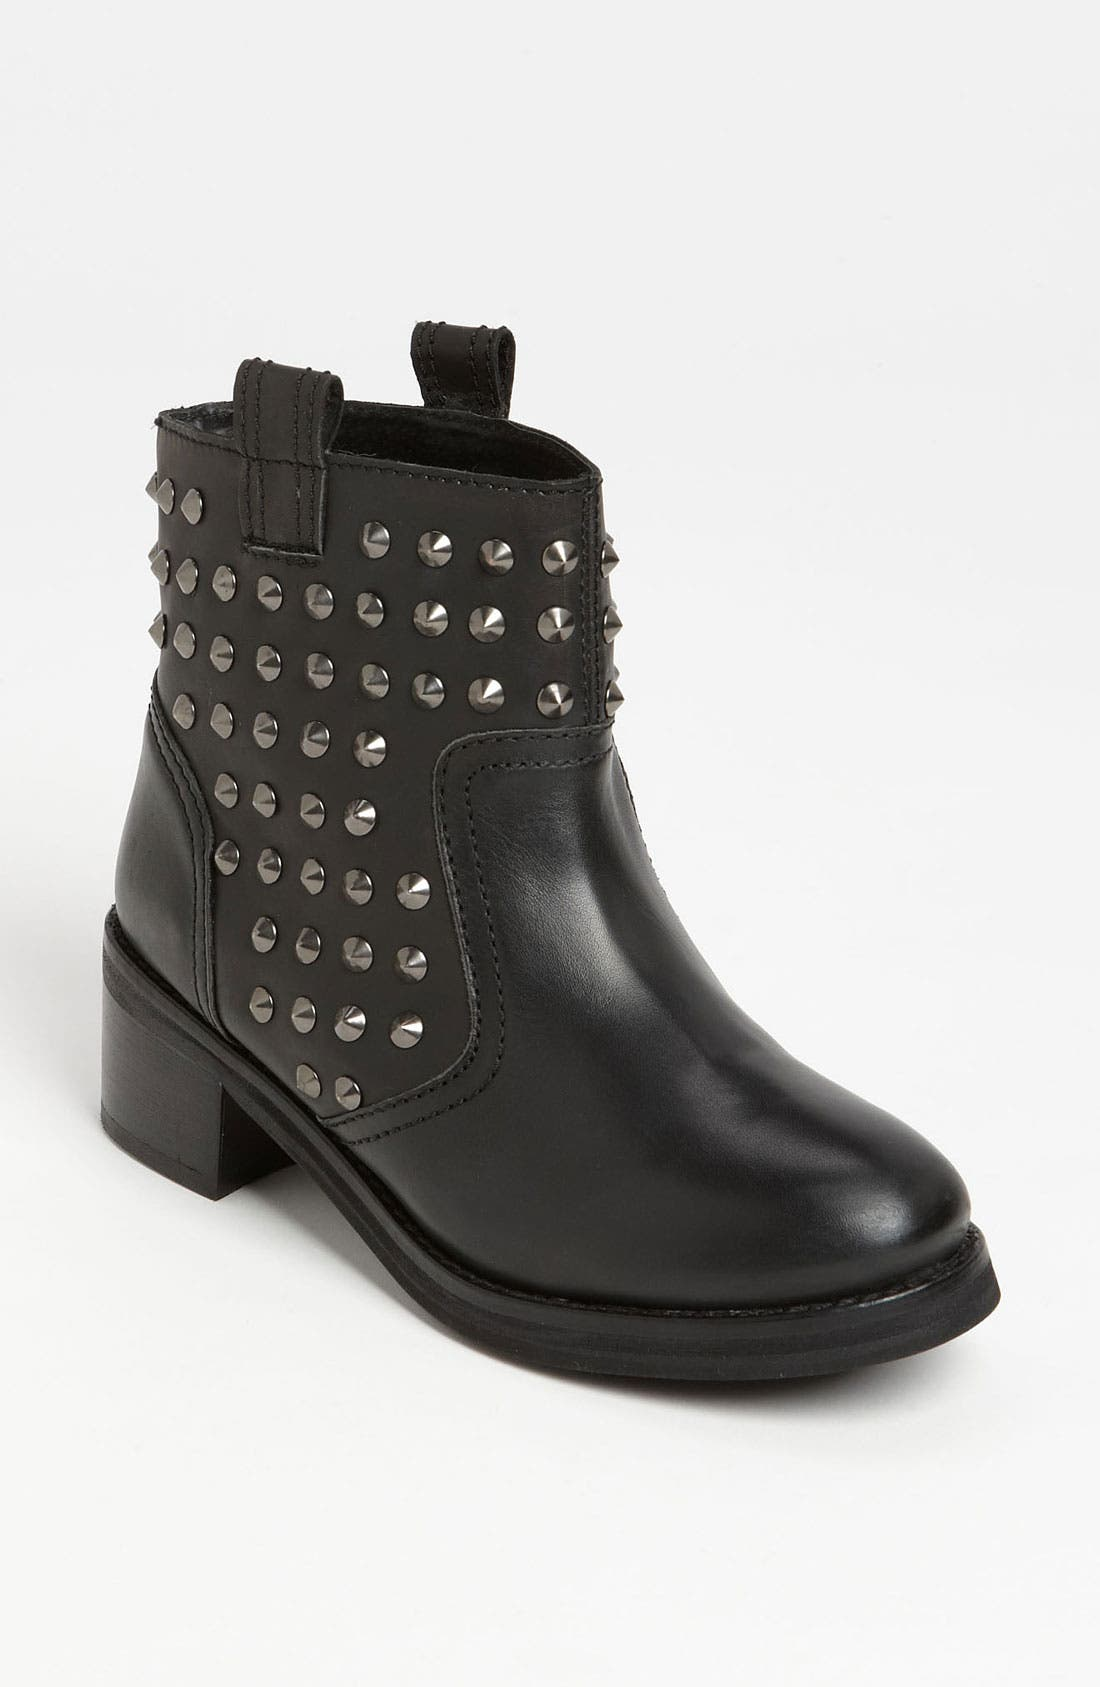 Main Image - Topshop 'Apocolypse' Boot